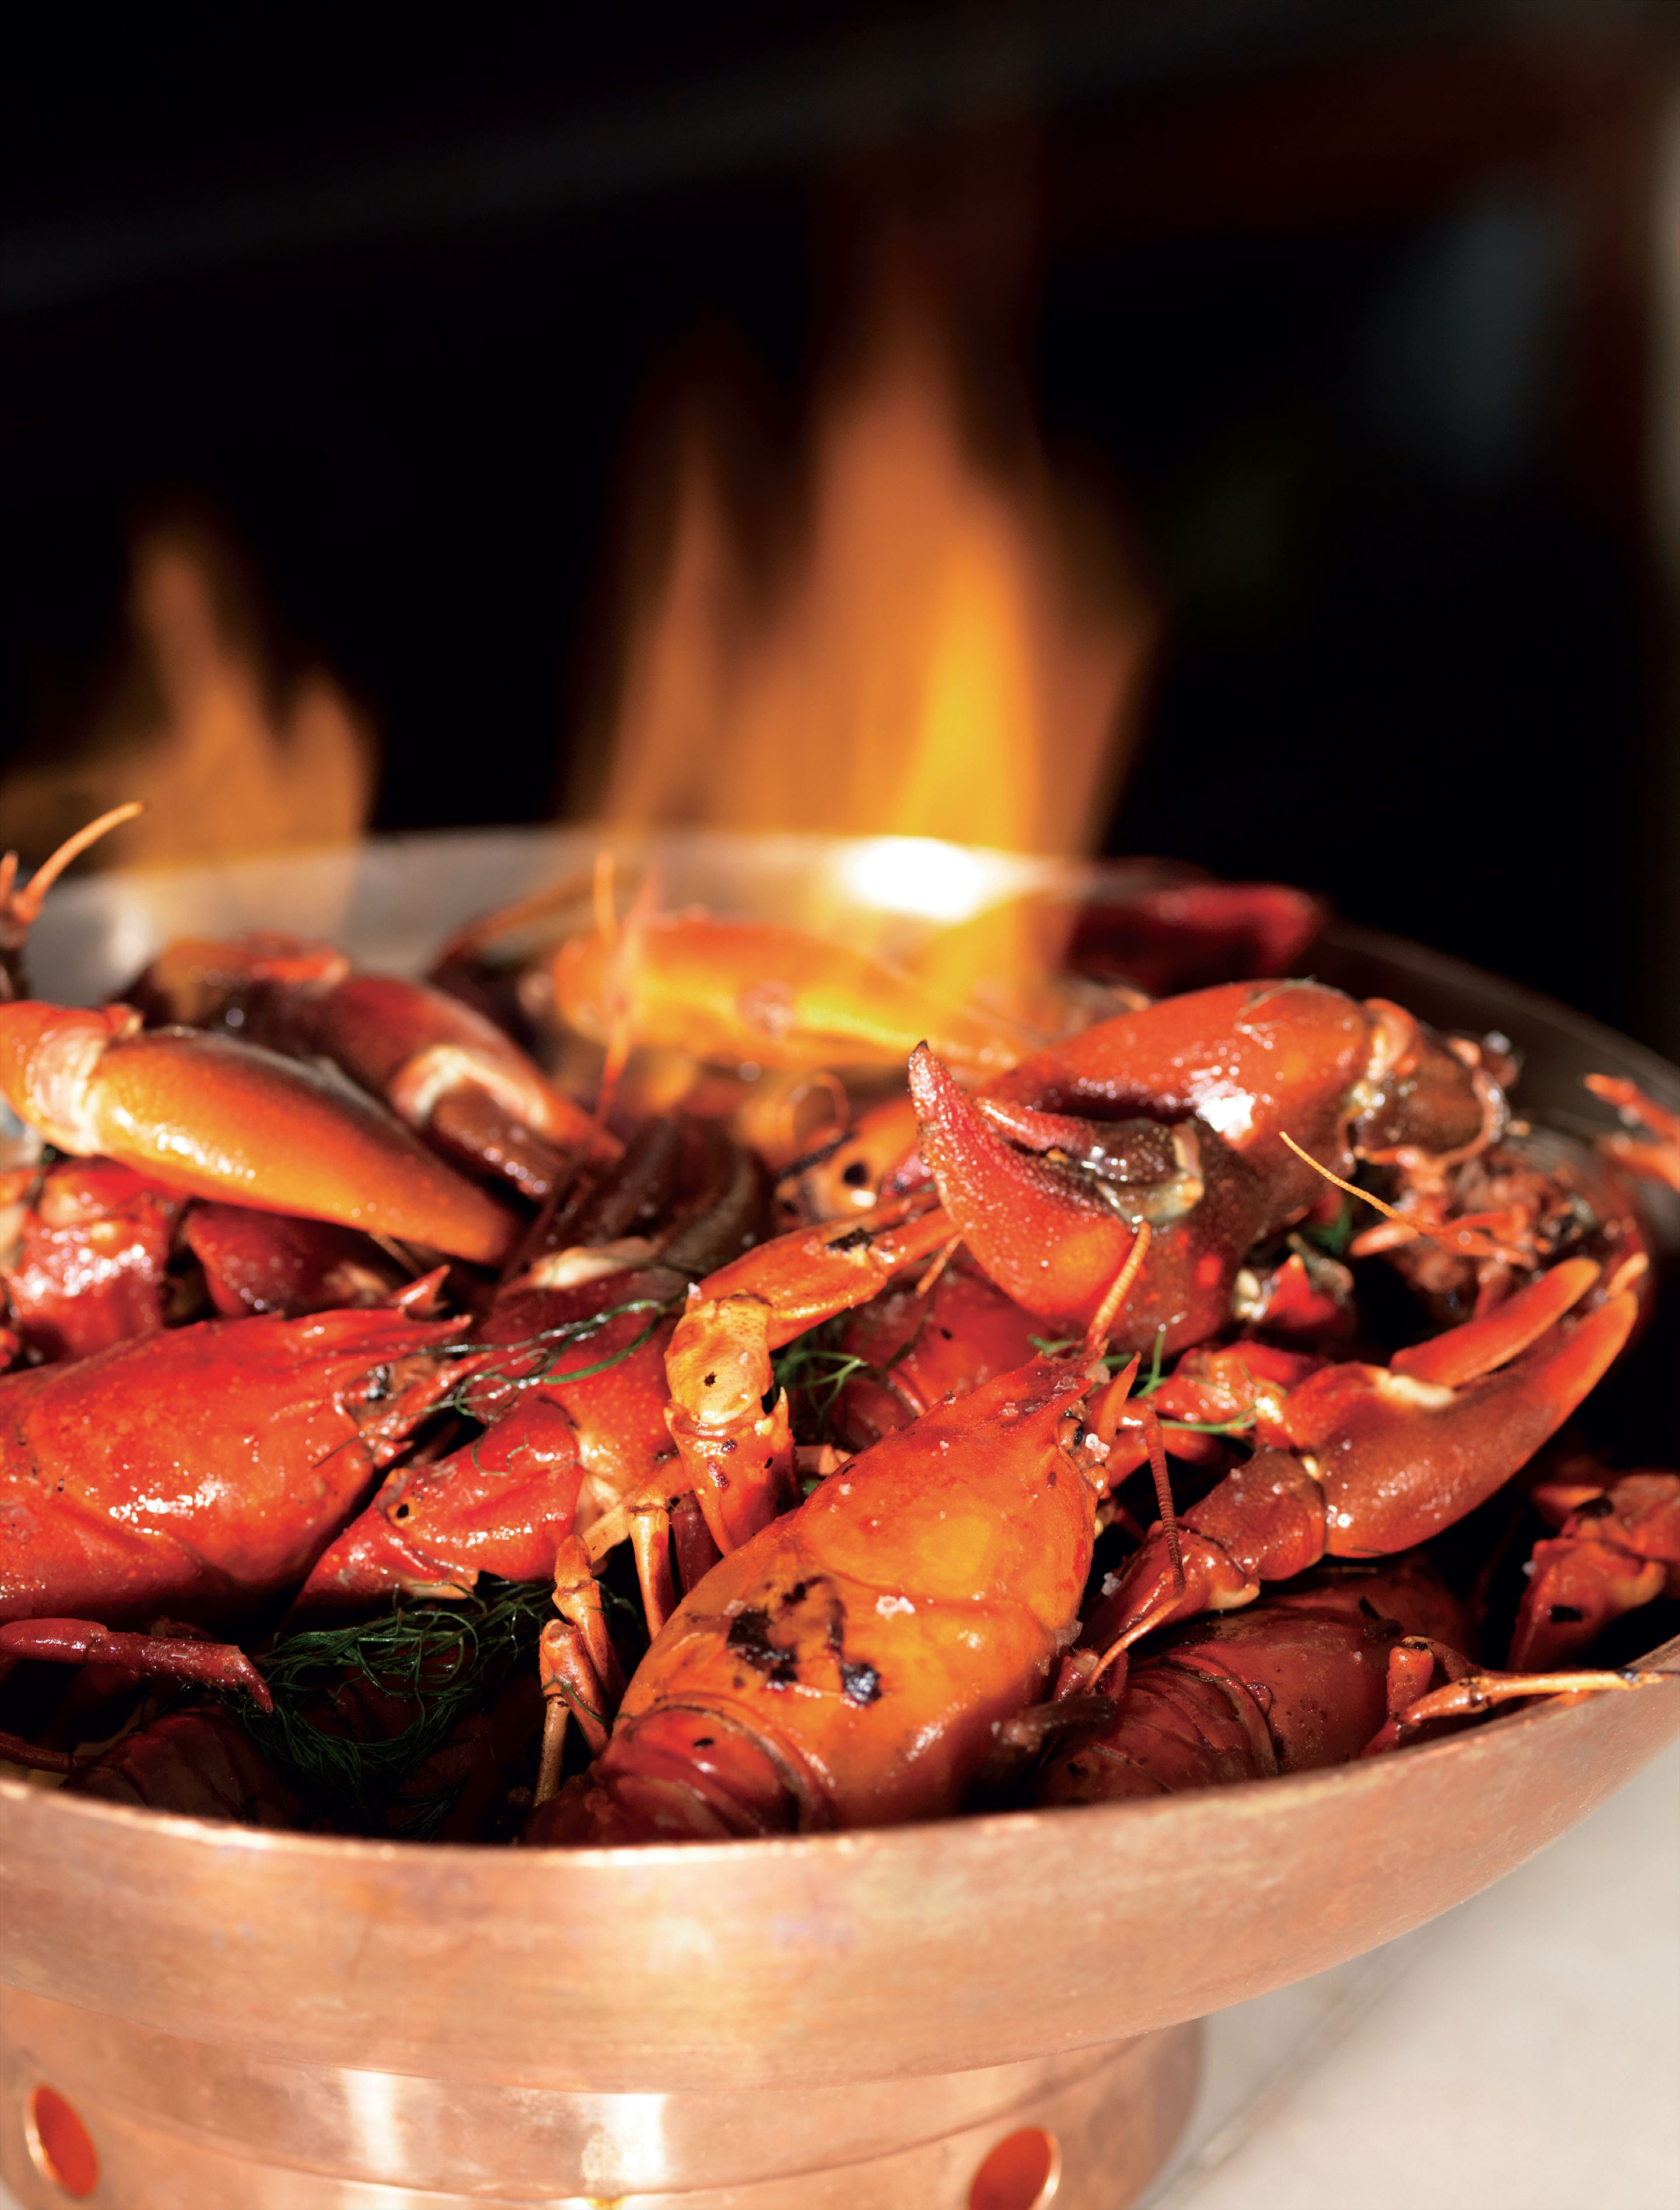 Roasted 'wilderness crayfish' flamed with cider brandy